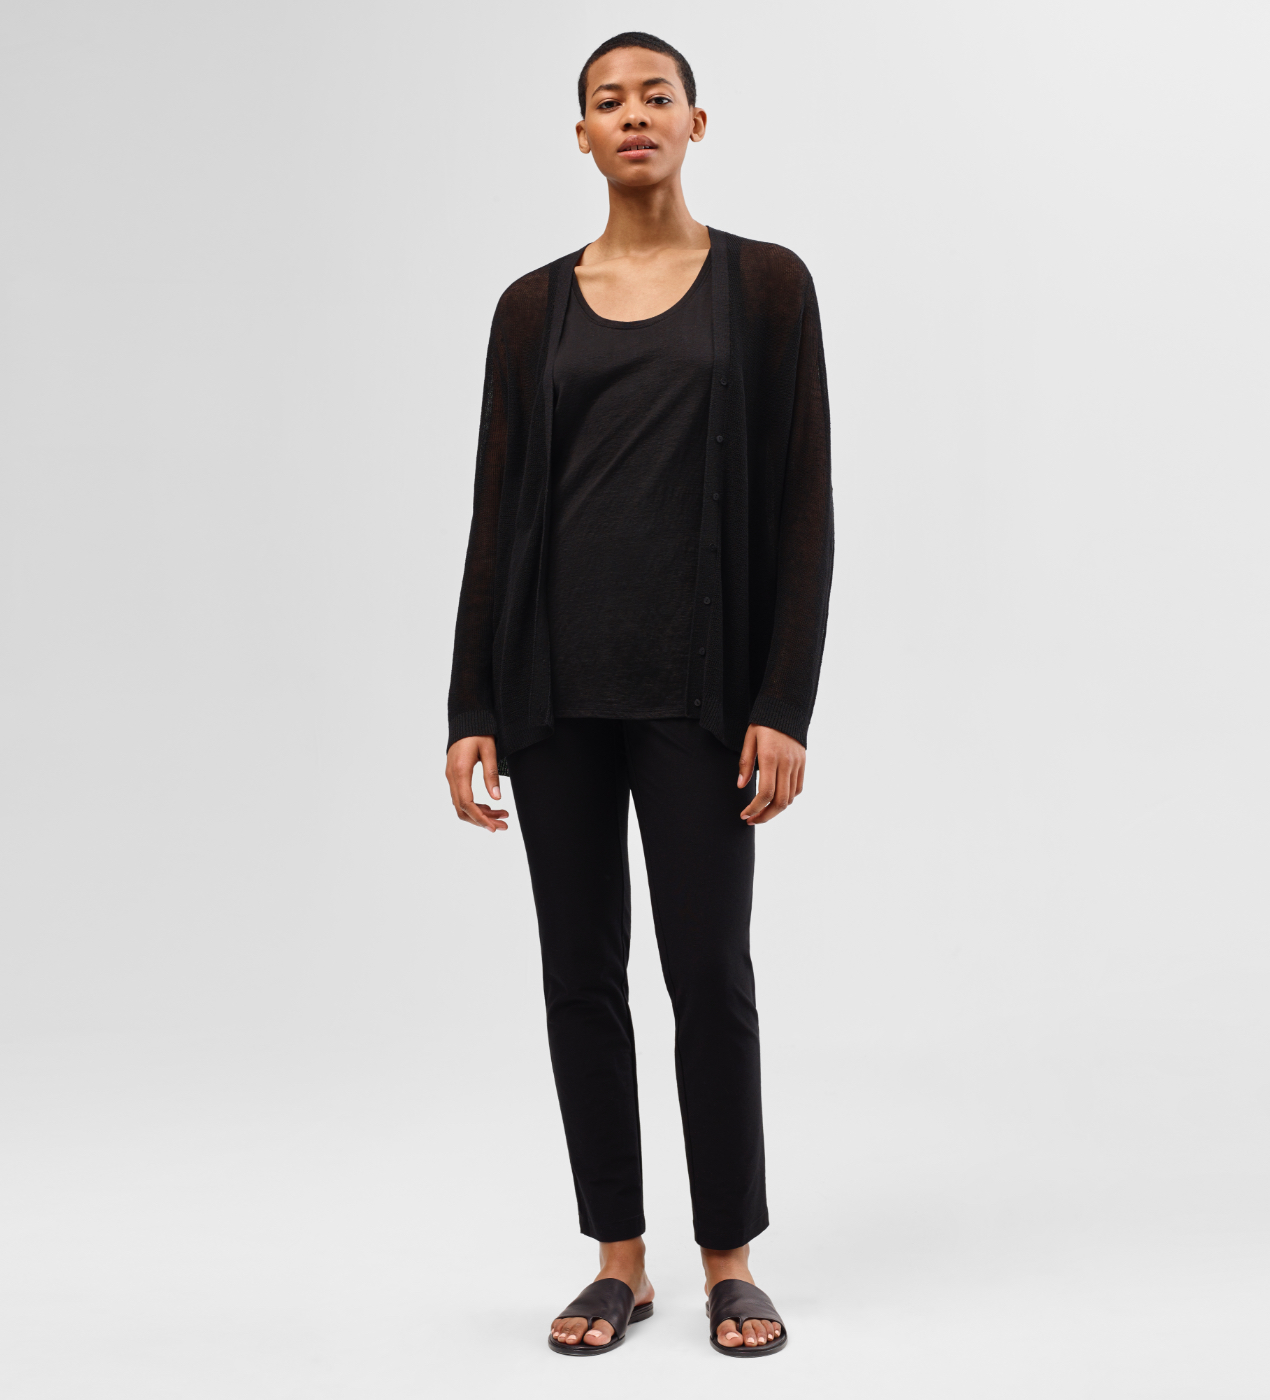 Winter Outfit Frauen Our Favorite June Looks Styles For Women Eileen Fisher